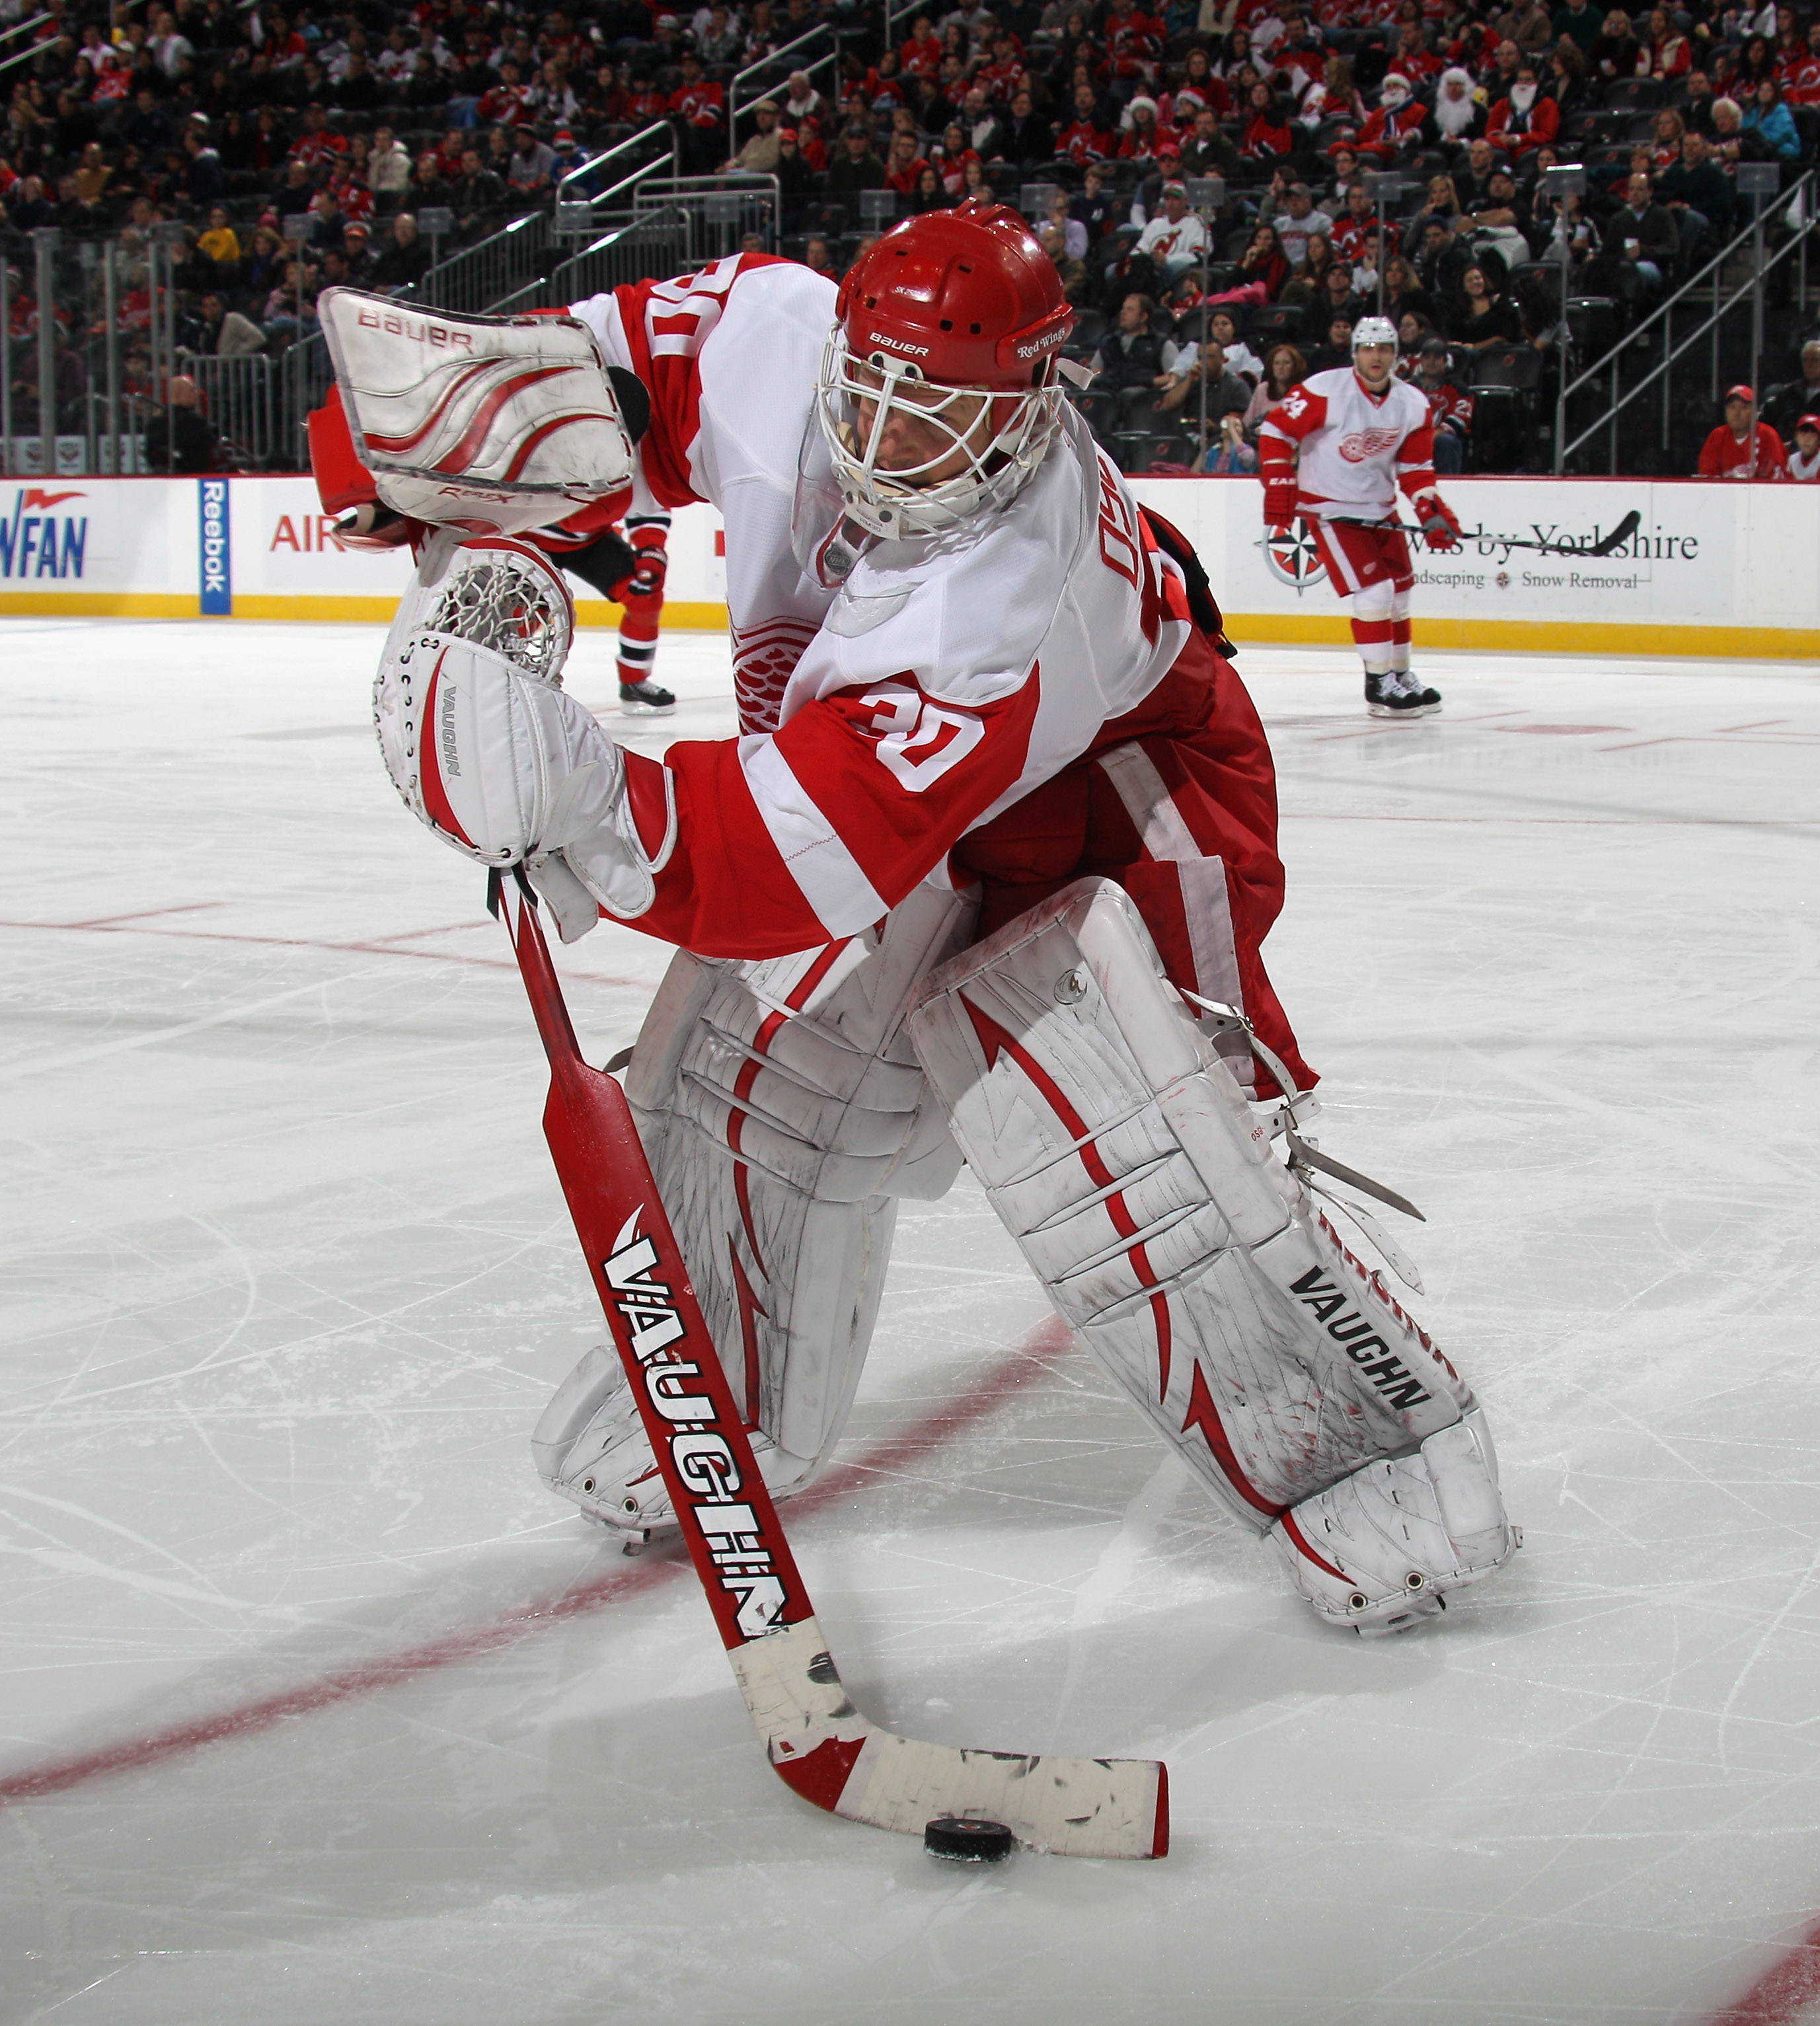 NEWARK, NJ - DECEMBER 11:  Chris Osgood #30 of the Detroit Red Wings tends net against the New Jersey Devils at the Prudential Center on December 11, 2010 in Newark, New Jersey. The Red Wings defeated the the Devils 4-1.  (Photo by Bruce Bennett/Getty Ima